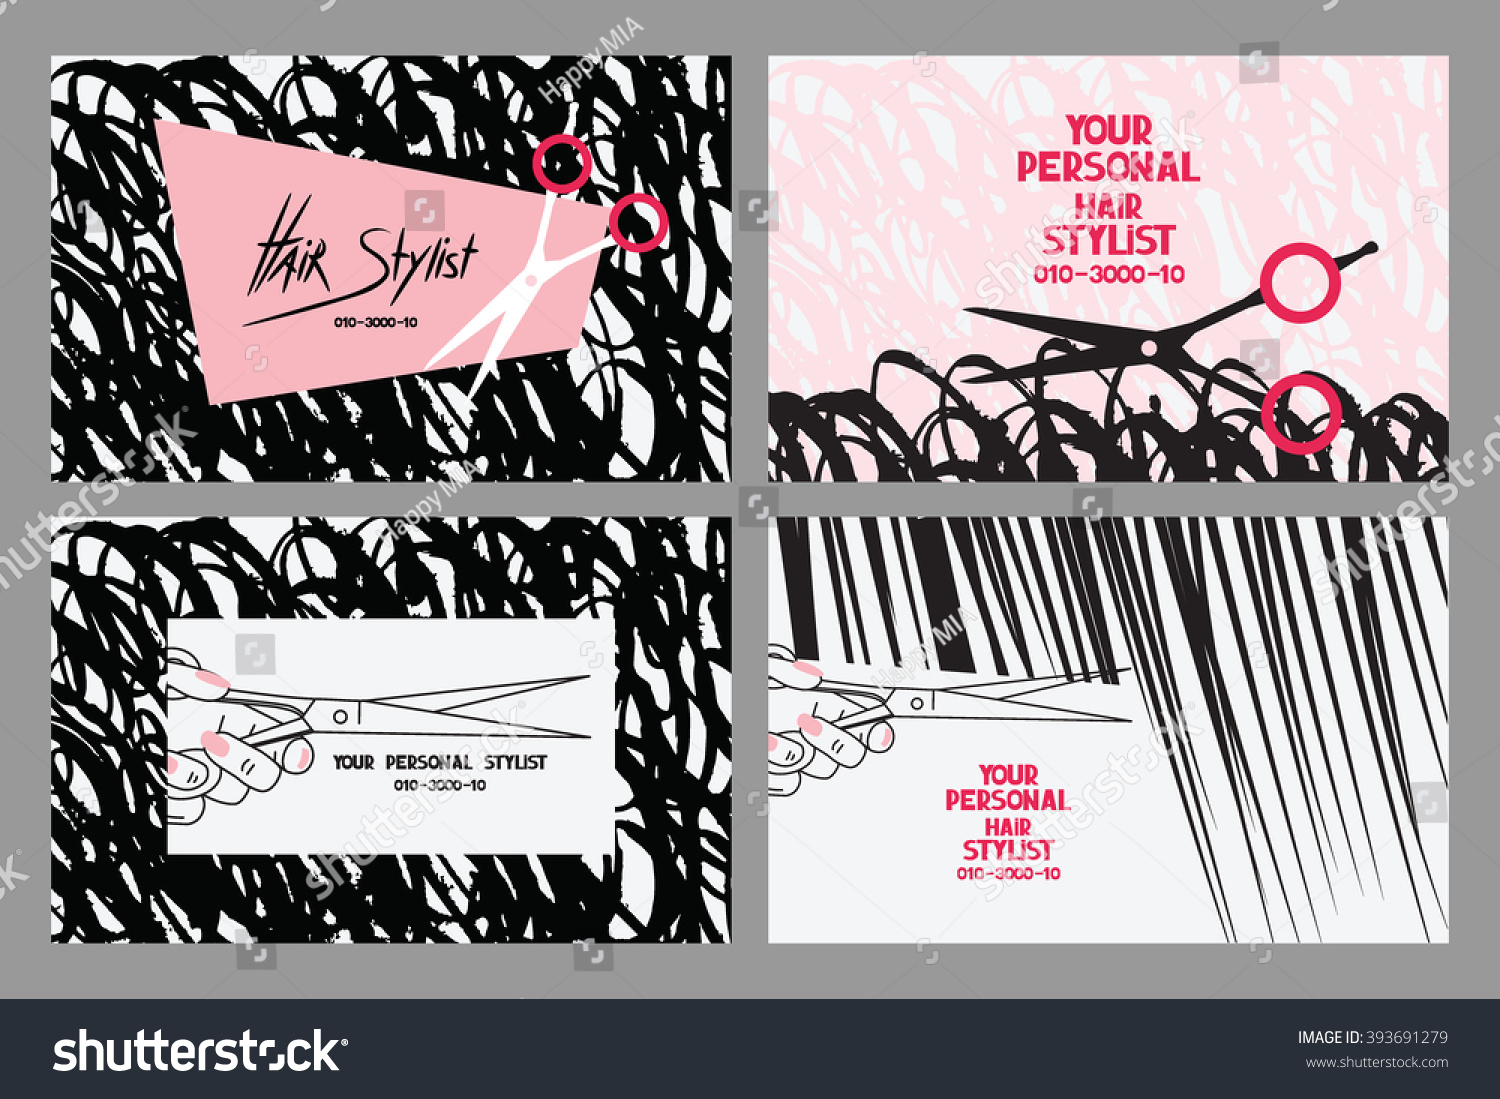 Hair Stylist Business Cards Abstract Hair Stock Vector 393691279 ...